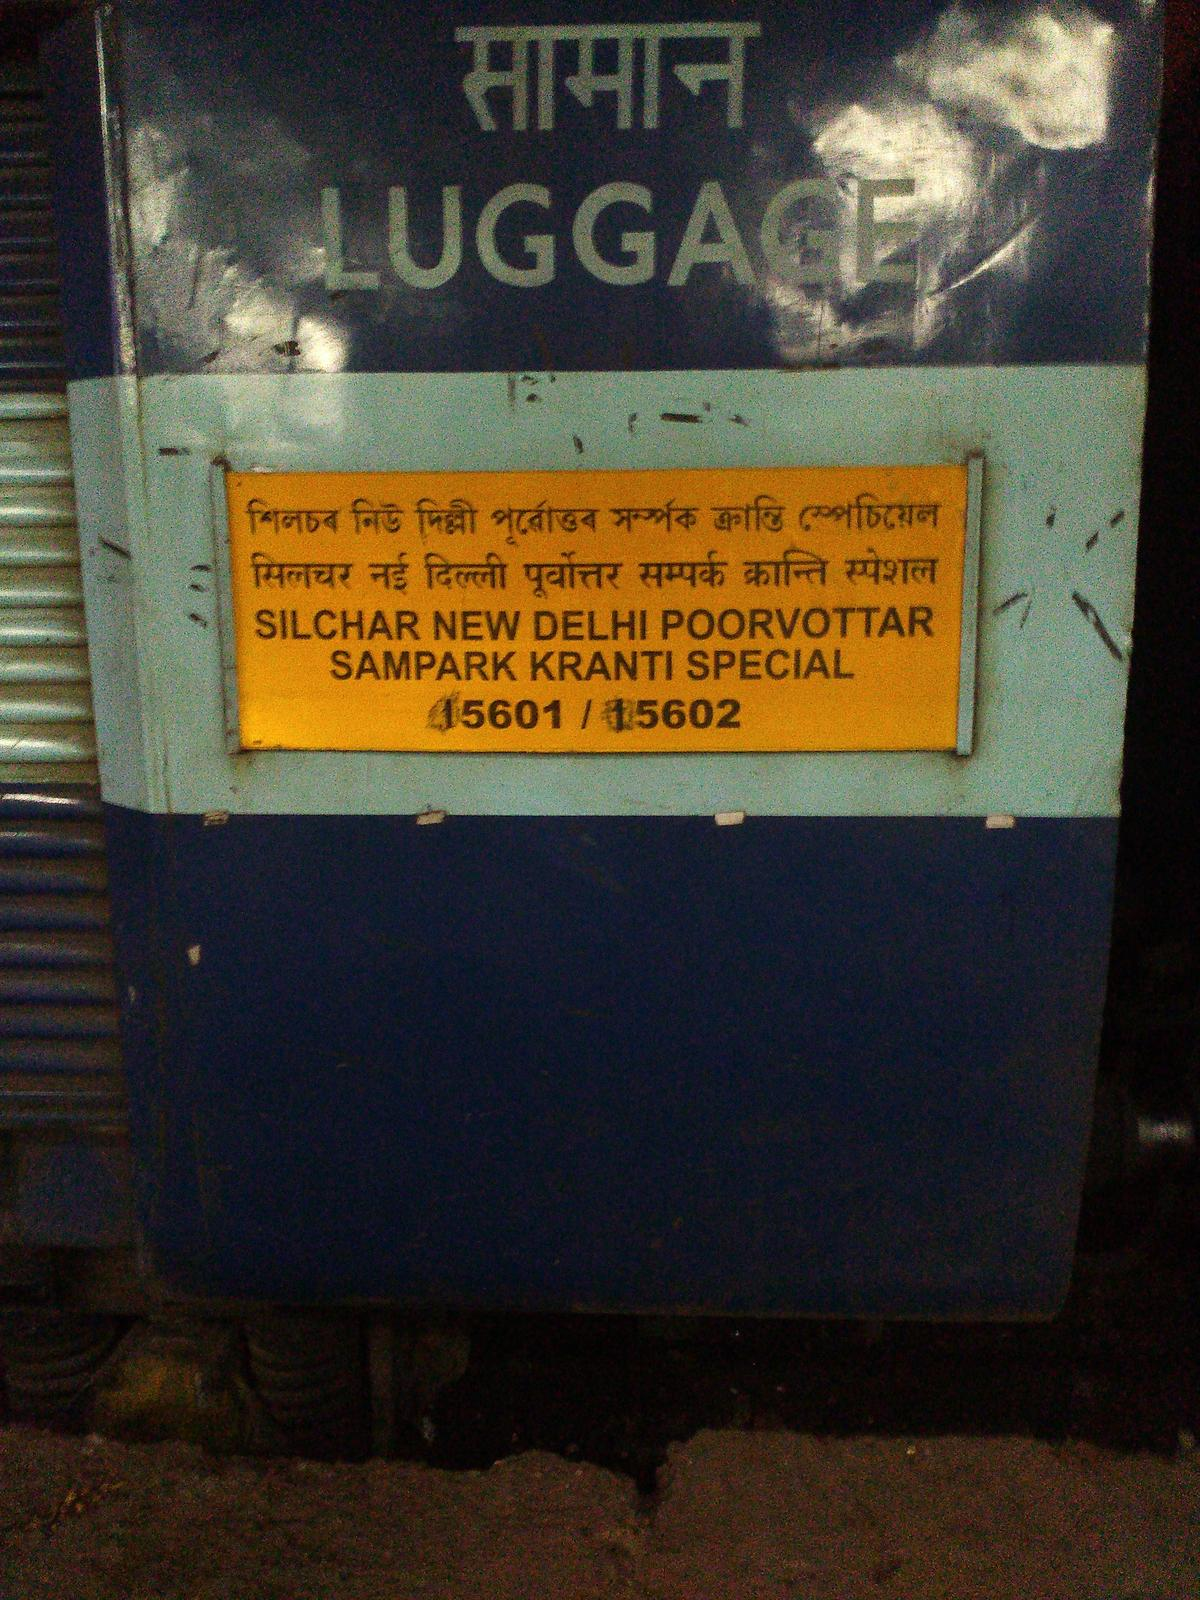 15601/Silchar - New Delhi Poorvottar Sampark Kranti Express (PT